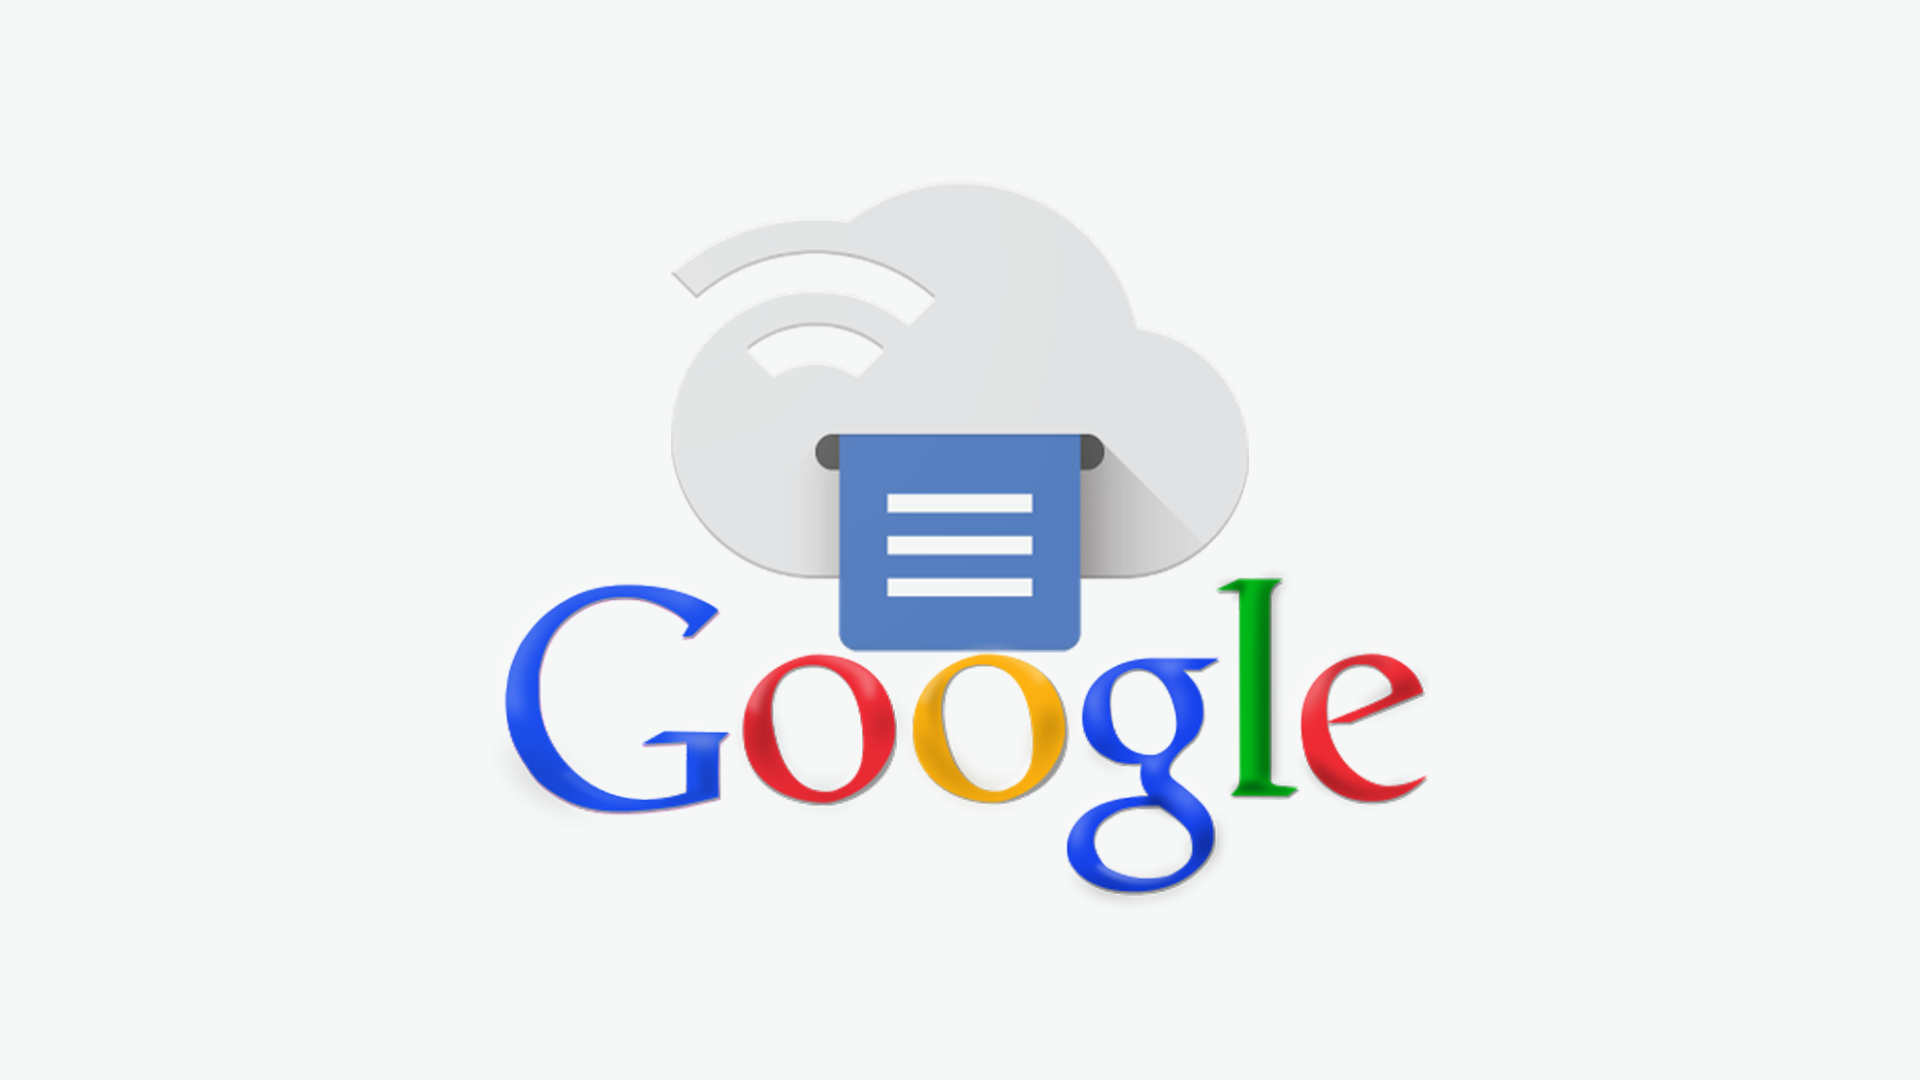 how to work with google cloud print nucuta